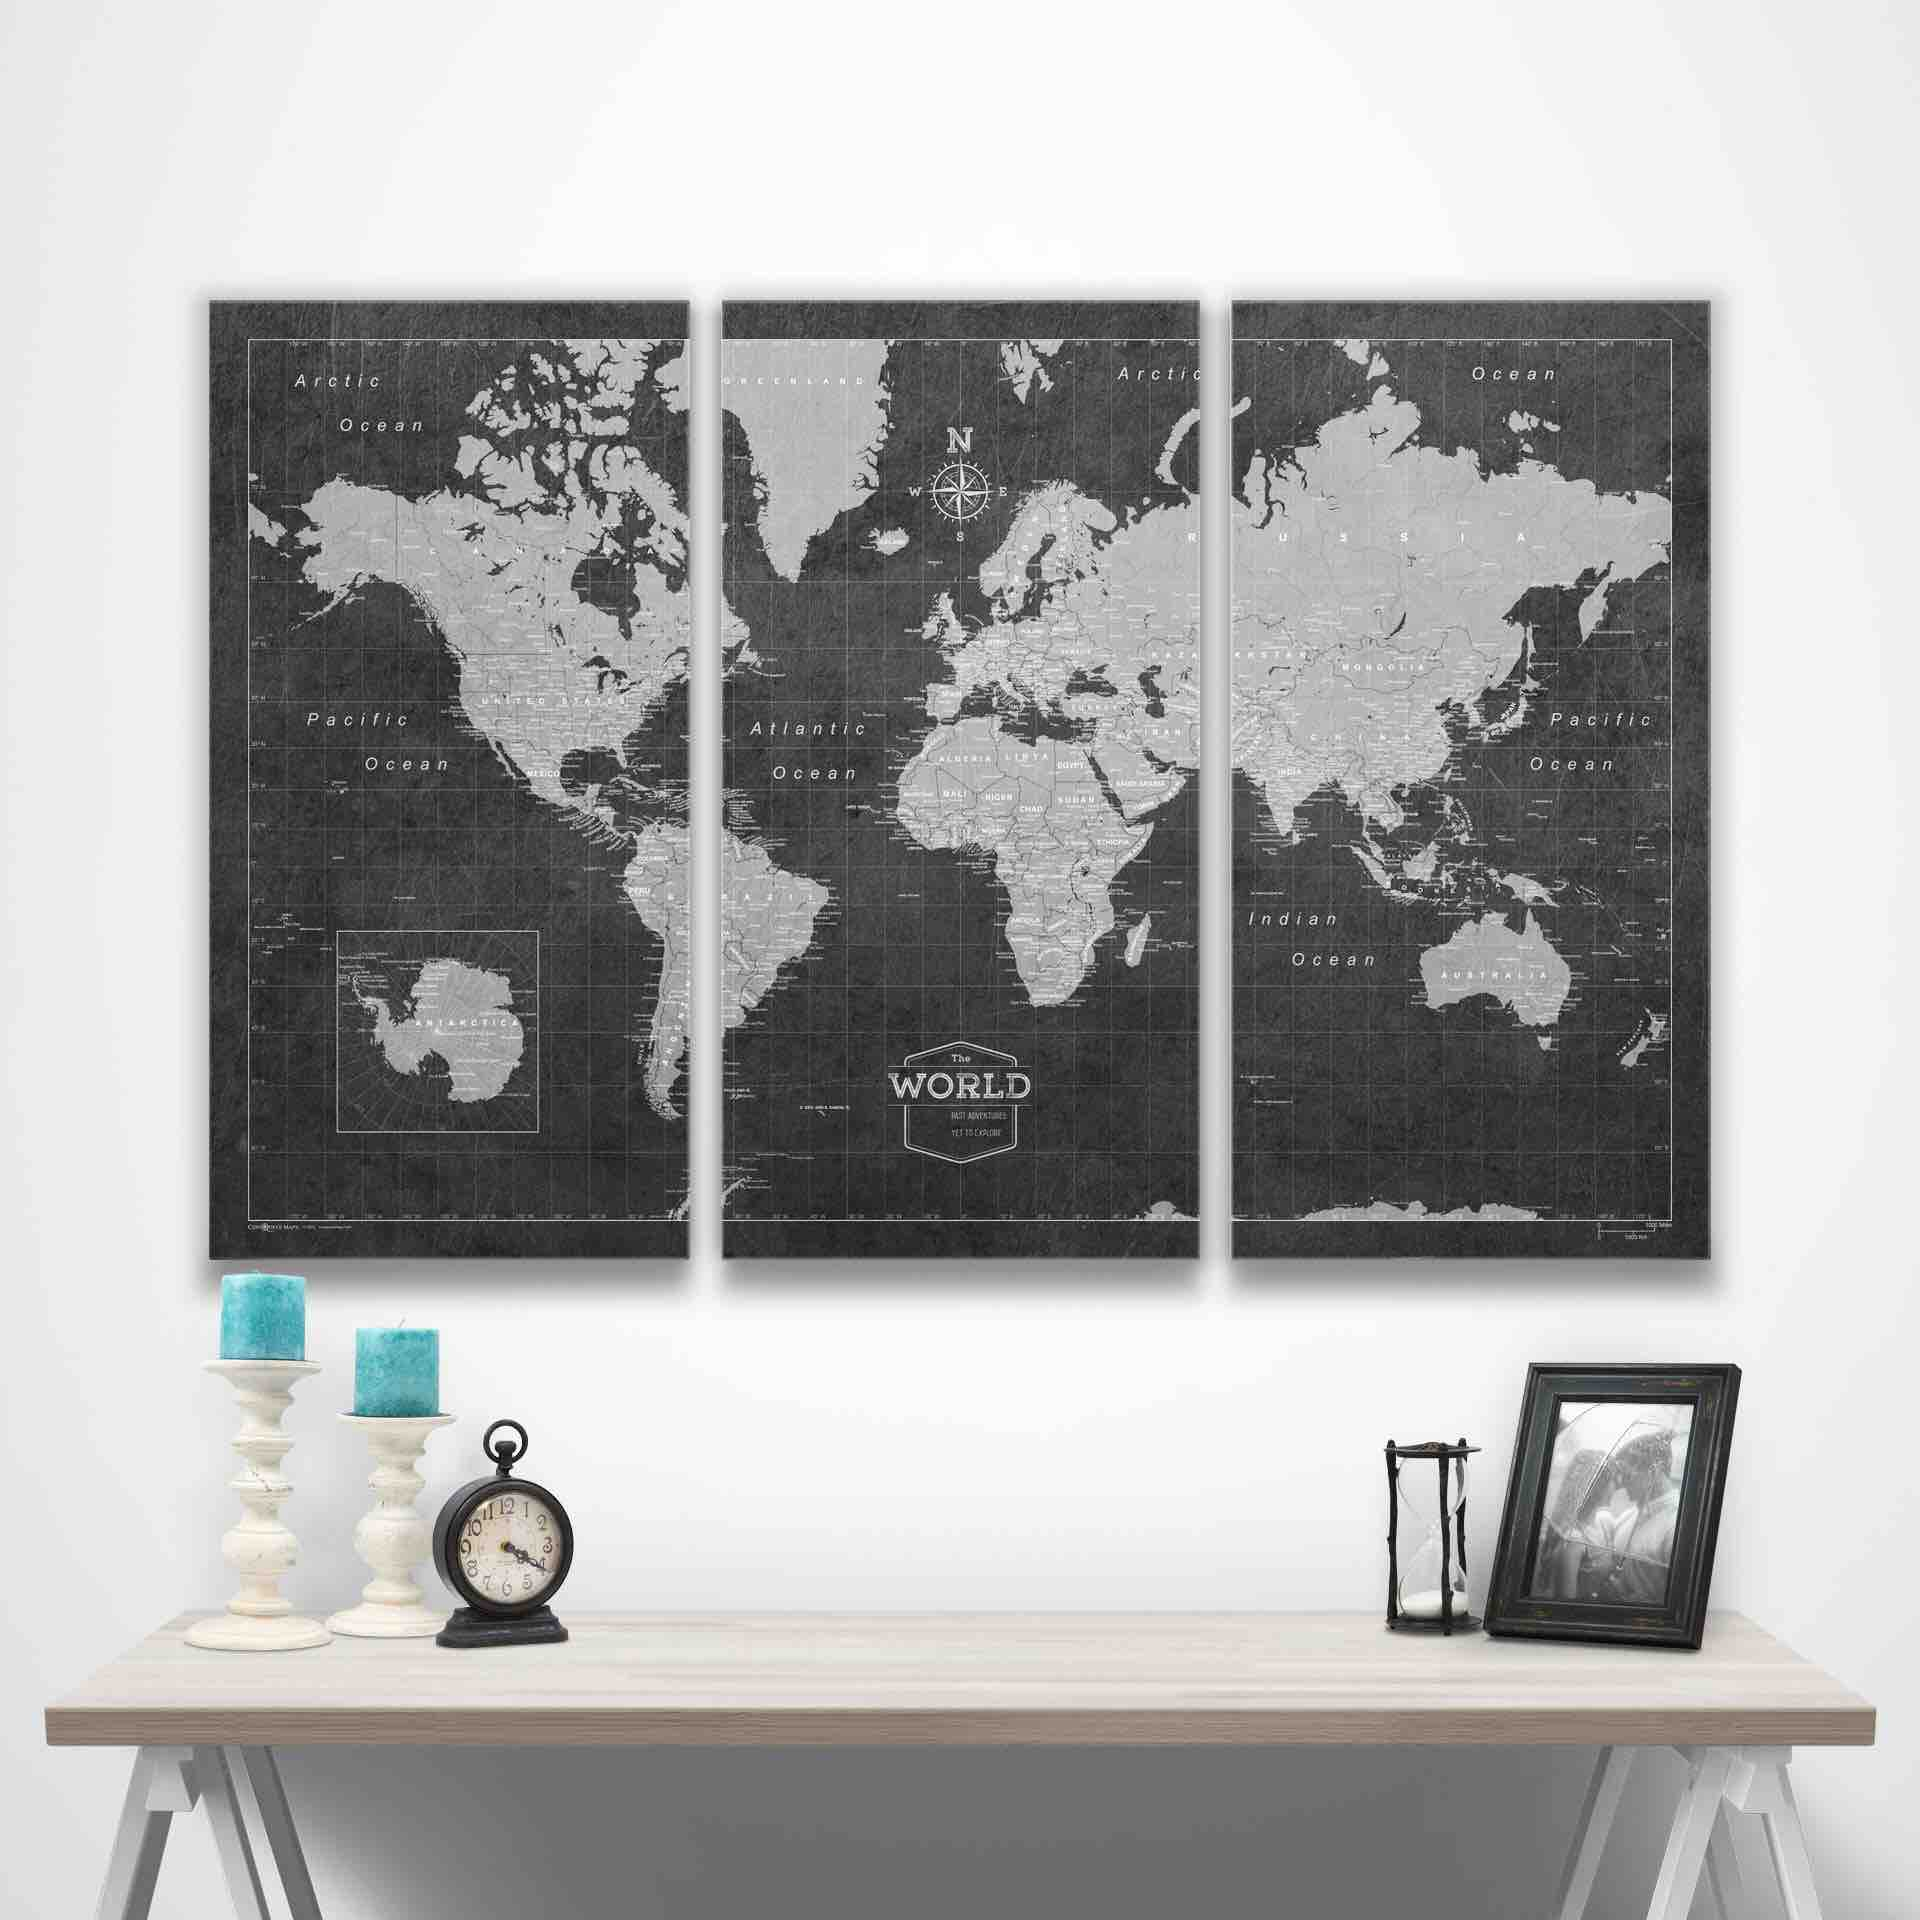 Conquest Maps' world travel pinboard map. ($99–$359, depending on size)